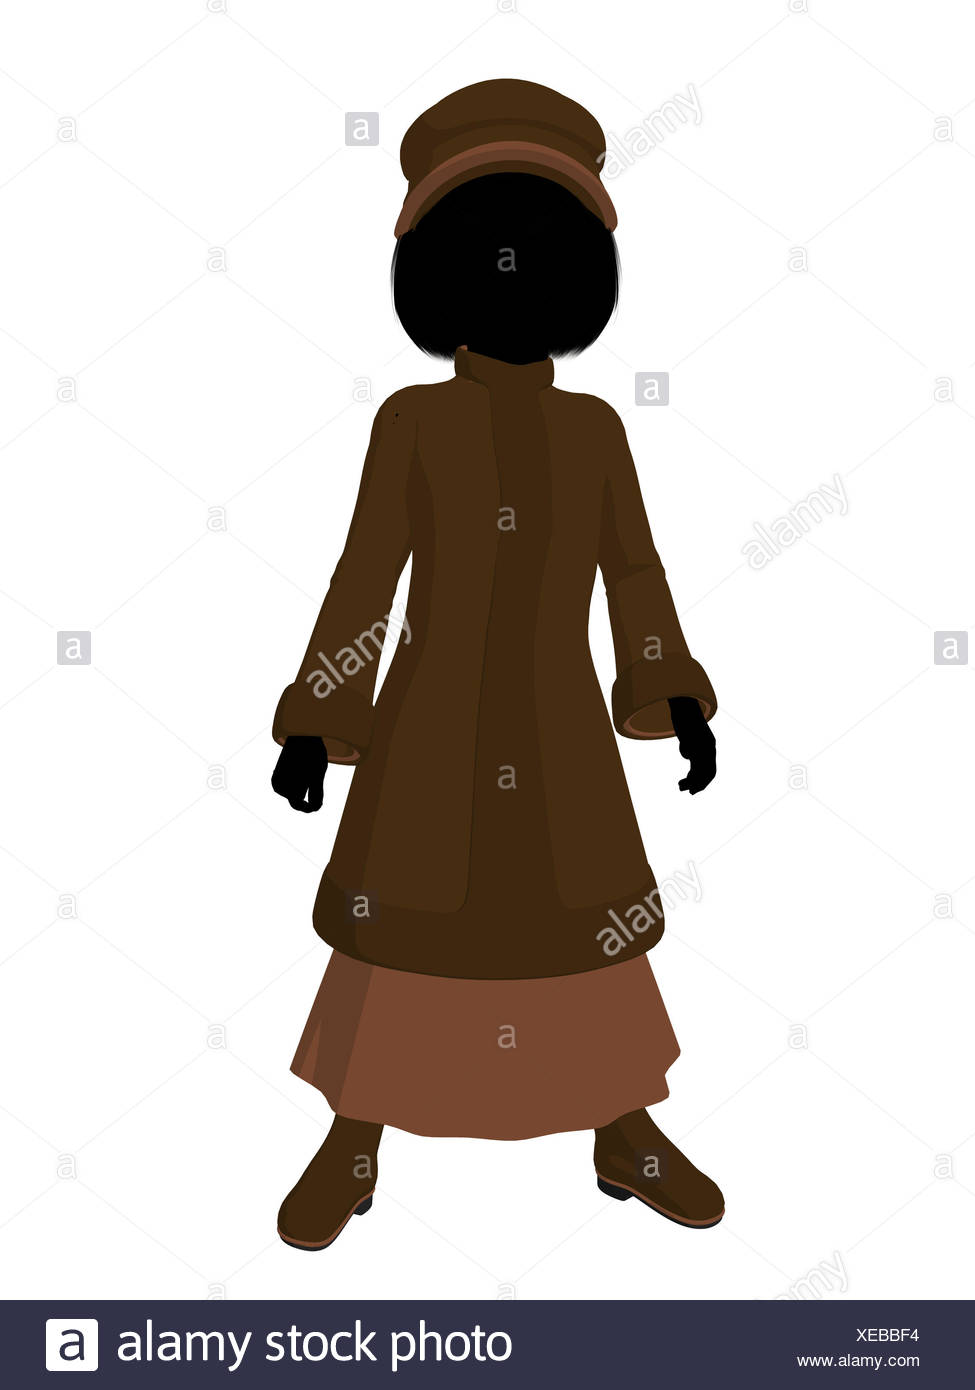 ff38607b17f Victorian Girl Illustration Silhouette Stock Photo  284221592 - Alamy